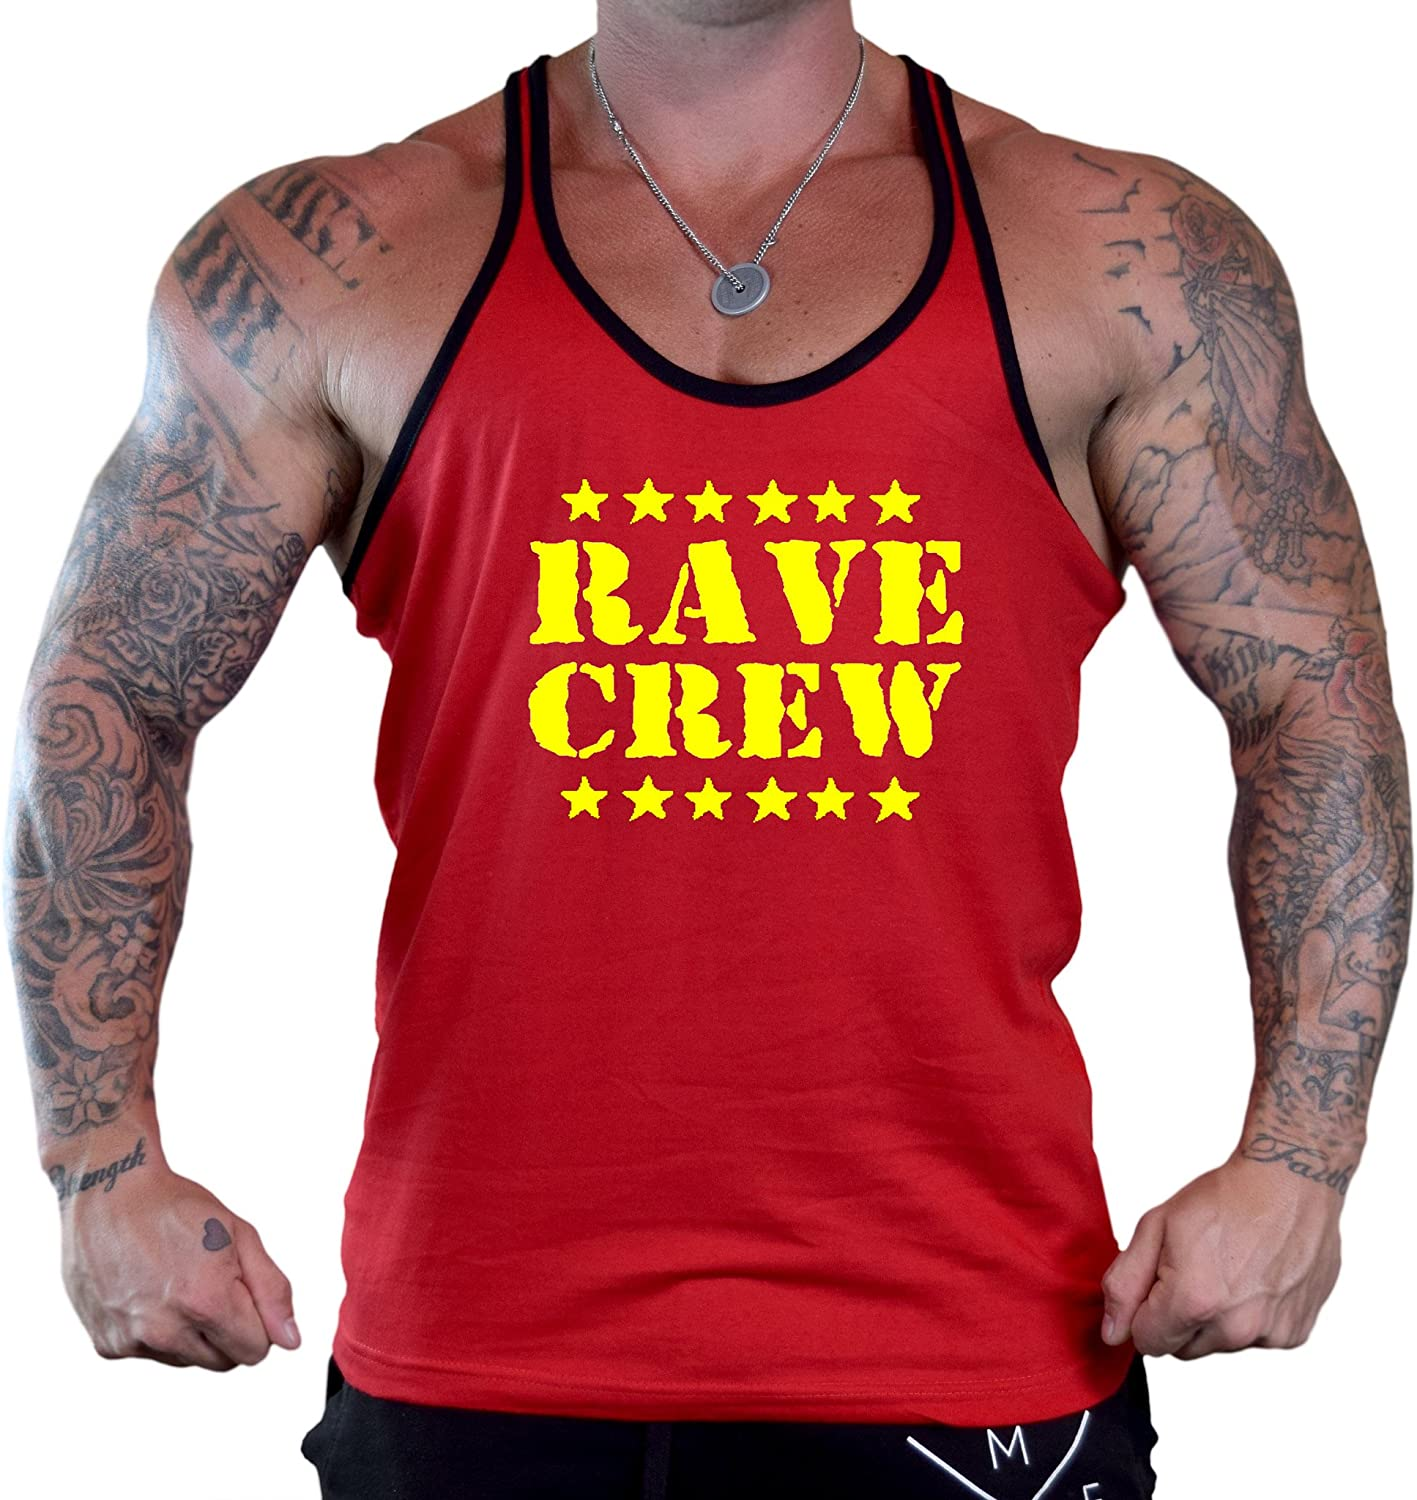 Mens Rave Crew V420 Tee Red Stringer Tank Top